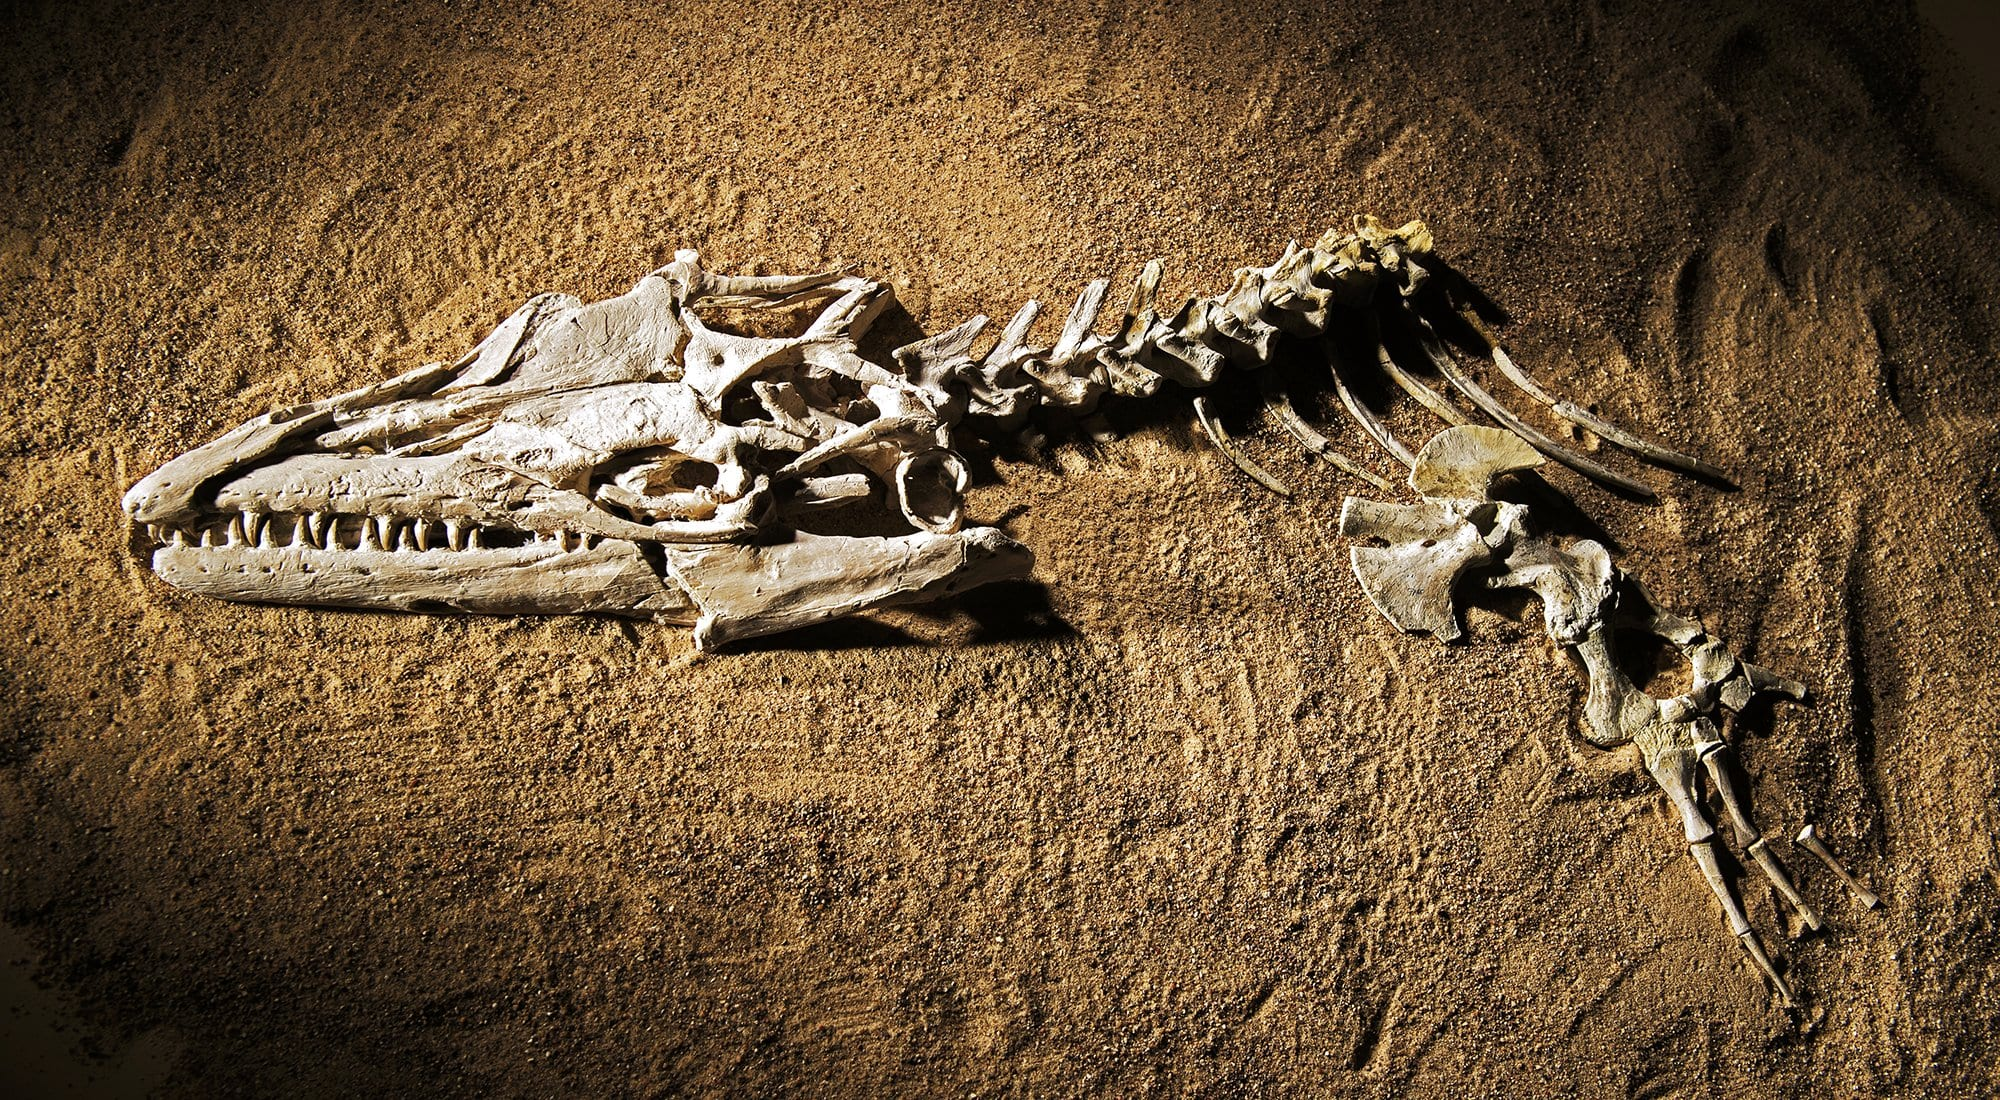 Fossils unearthed and prepared by SMU faculty and student researchers will be featured in a Smithsonian exhibition opening November 9.